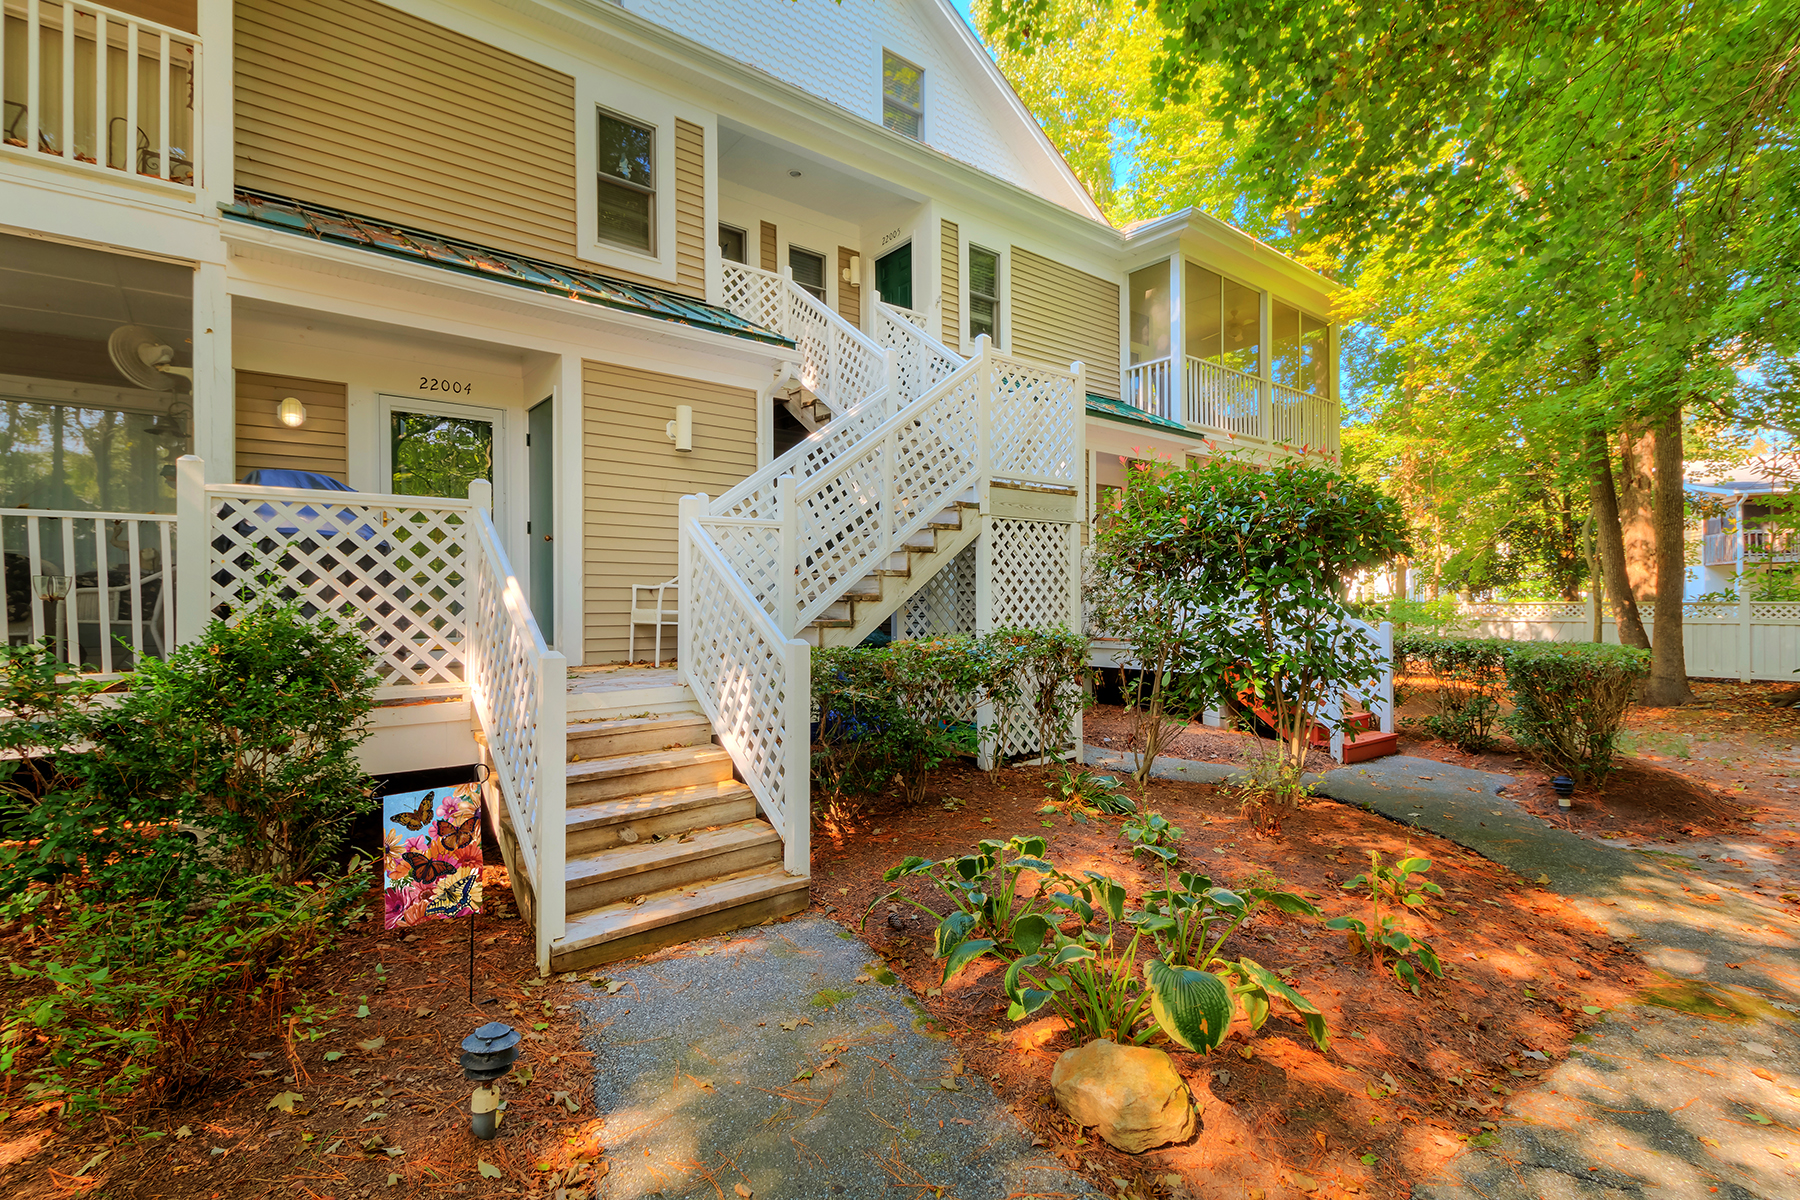 Single Family Home for Sale at 33358 Timberview Ct , 22005, Bethany Beach, DE 199 33358 Timberview Ct 22005 Bethany Beach, Delaware 19930 United States